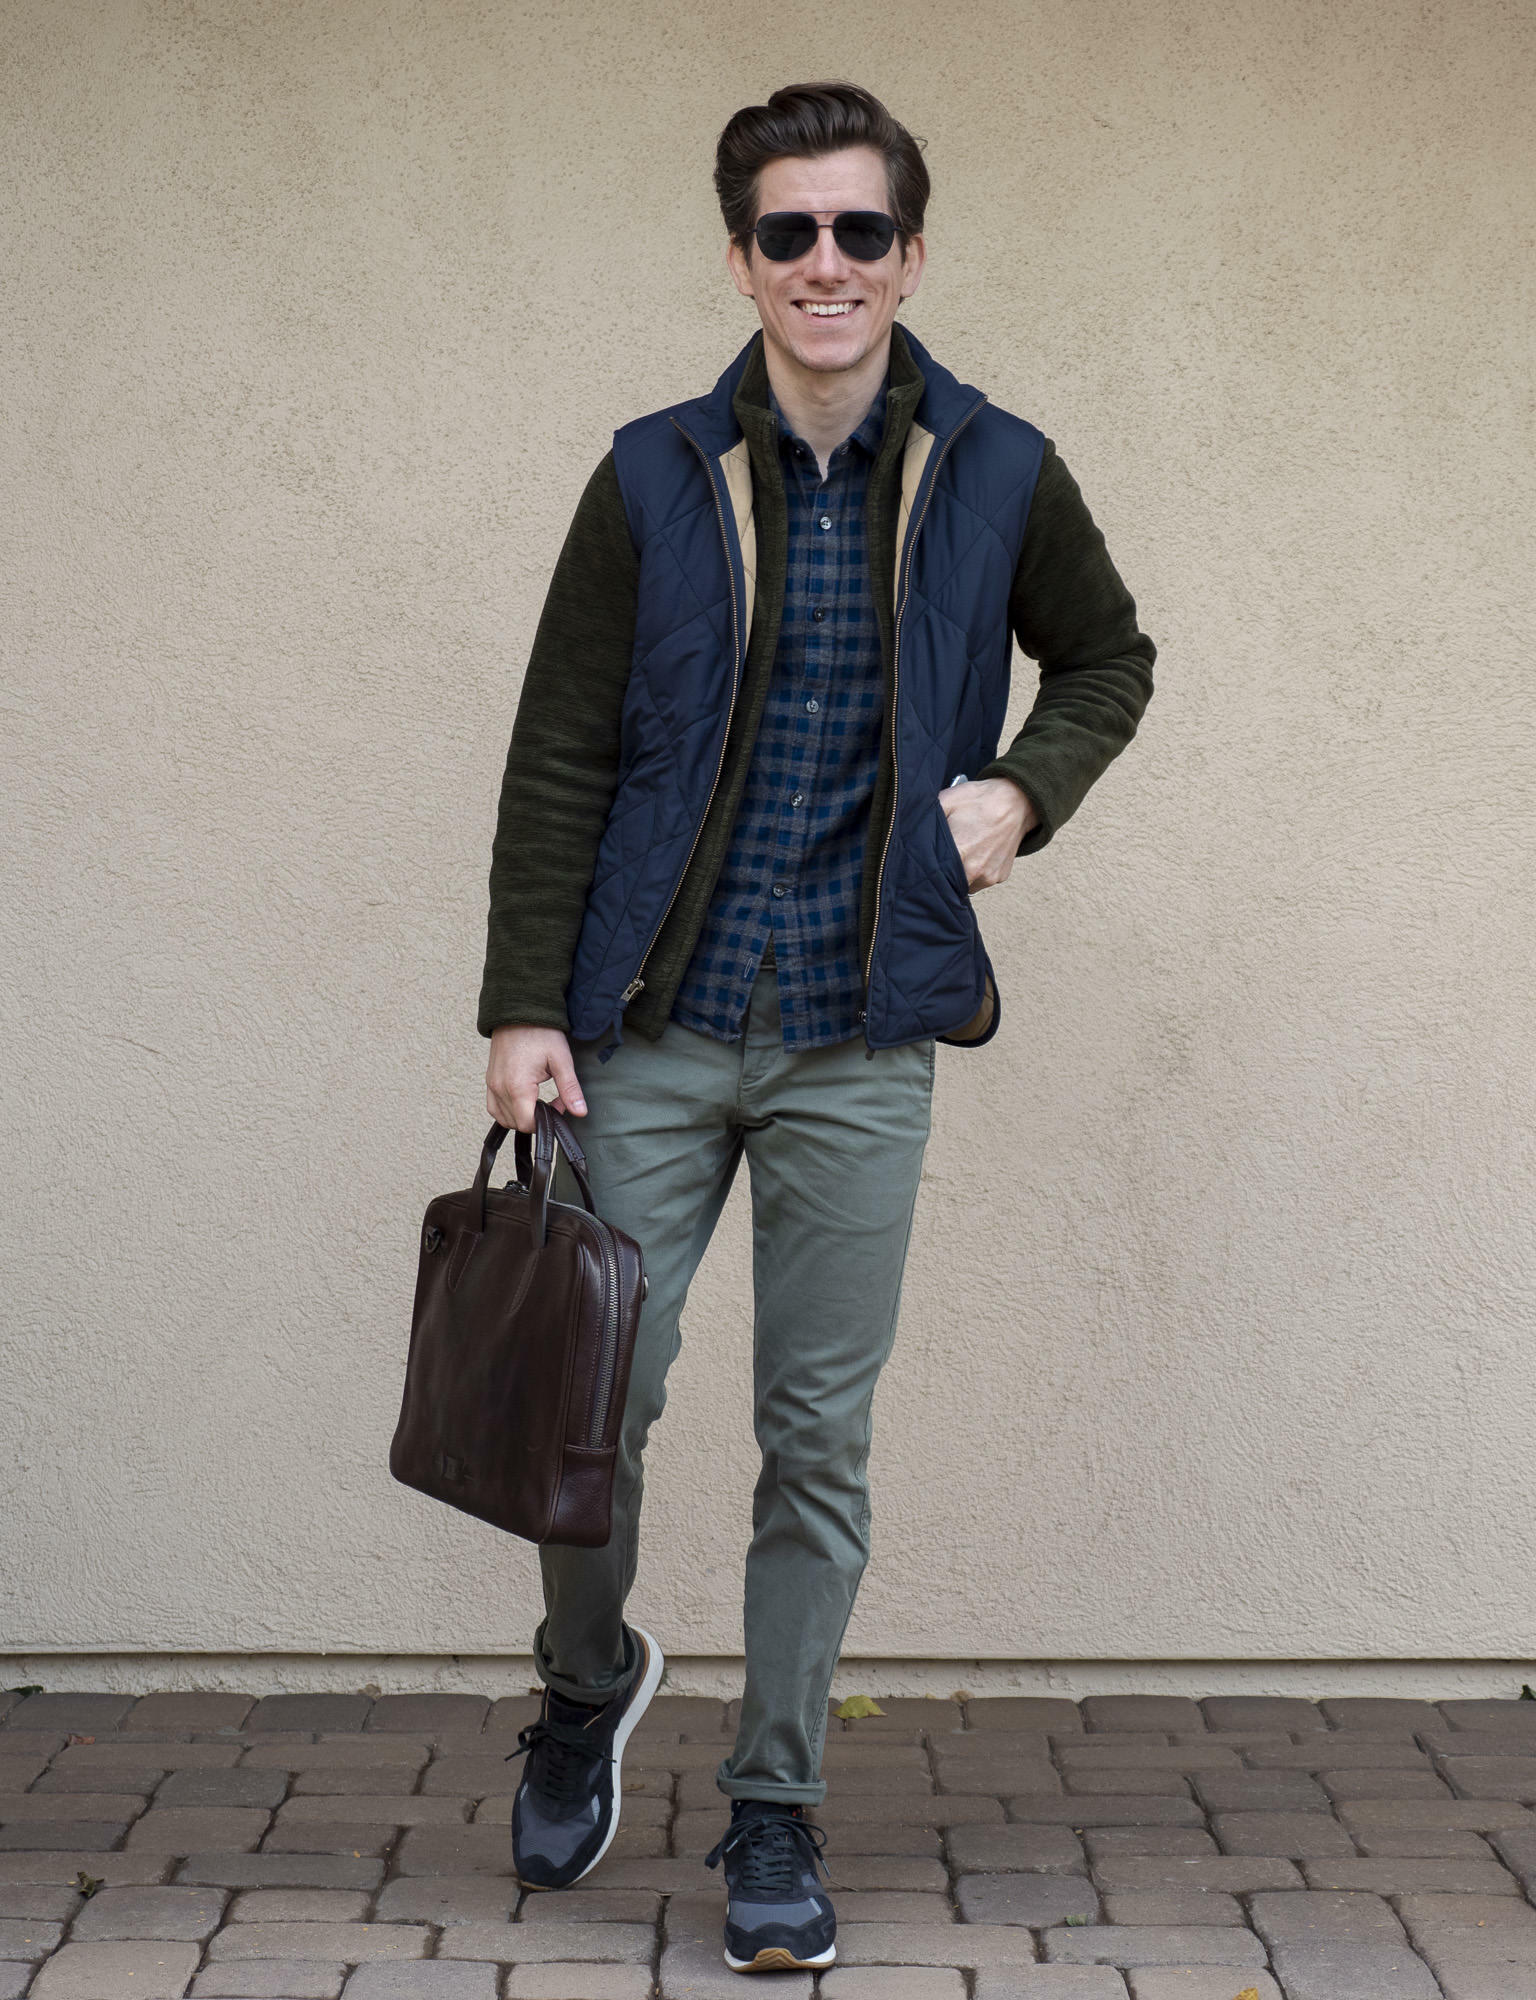 Flannel and fleece with vest